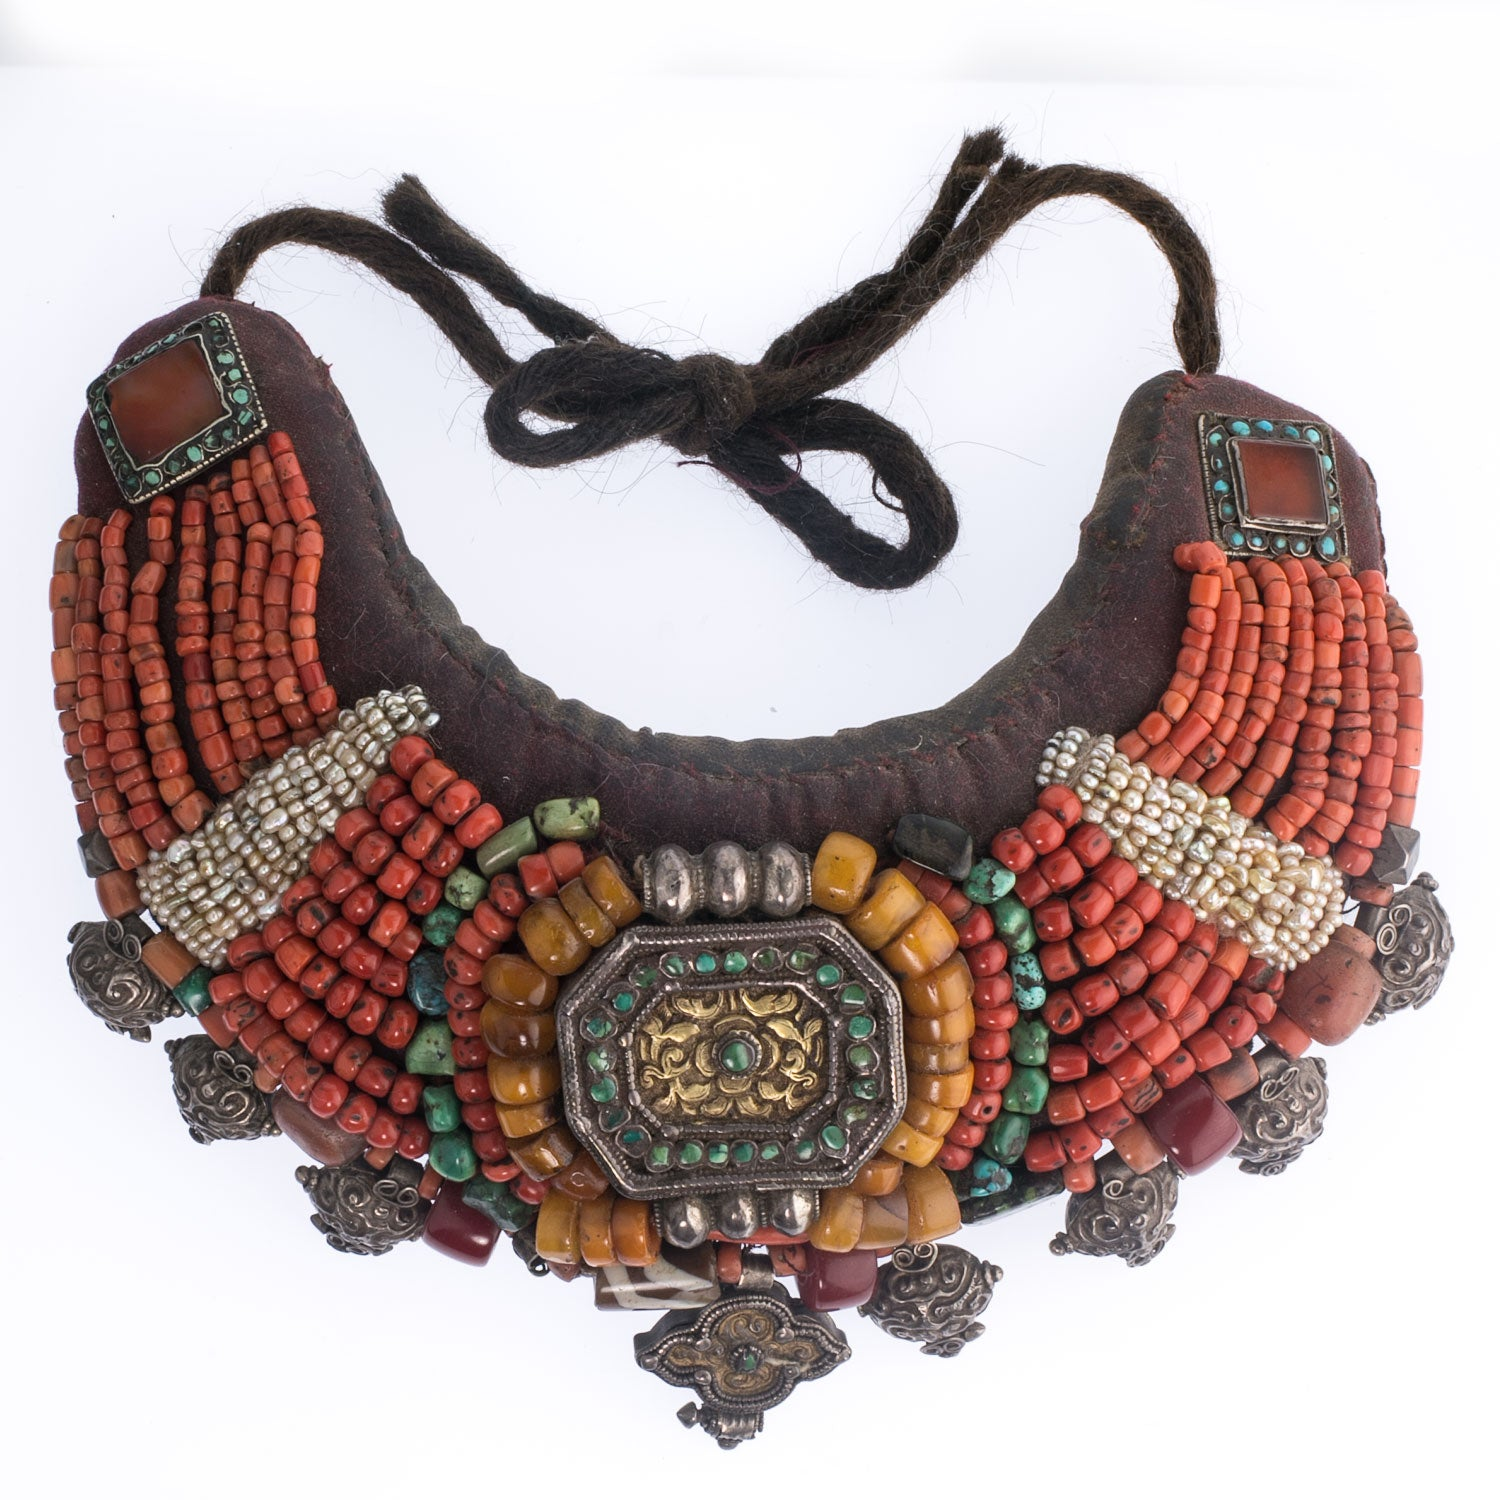 Vintage Nepalese Collar Necklace with Turquoise and Red Stone Inlay Wood and Silver Beads Coral